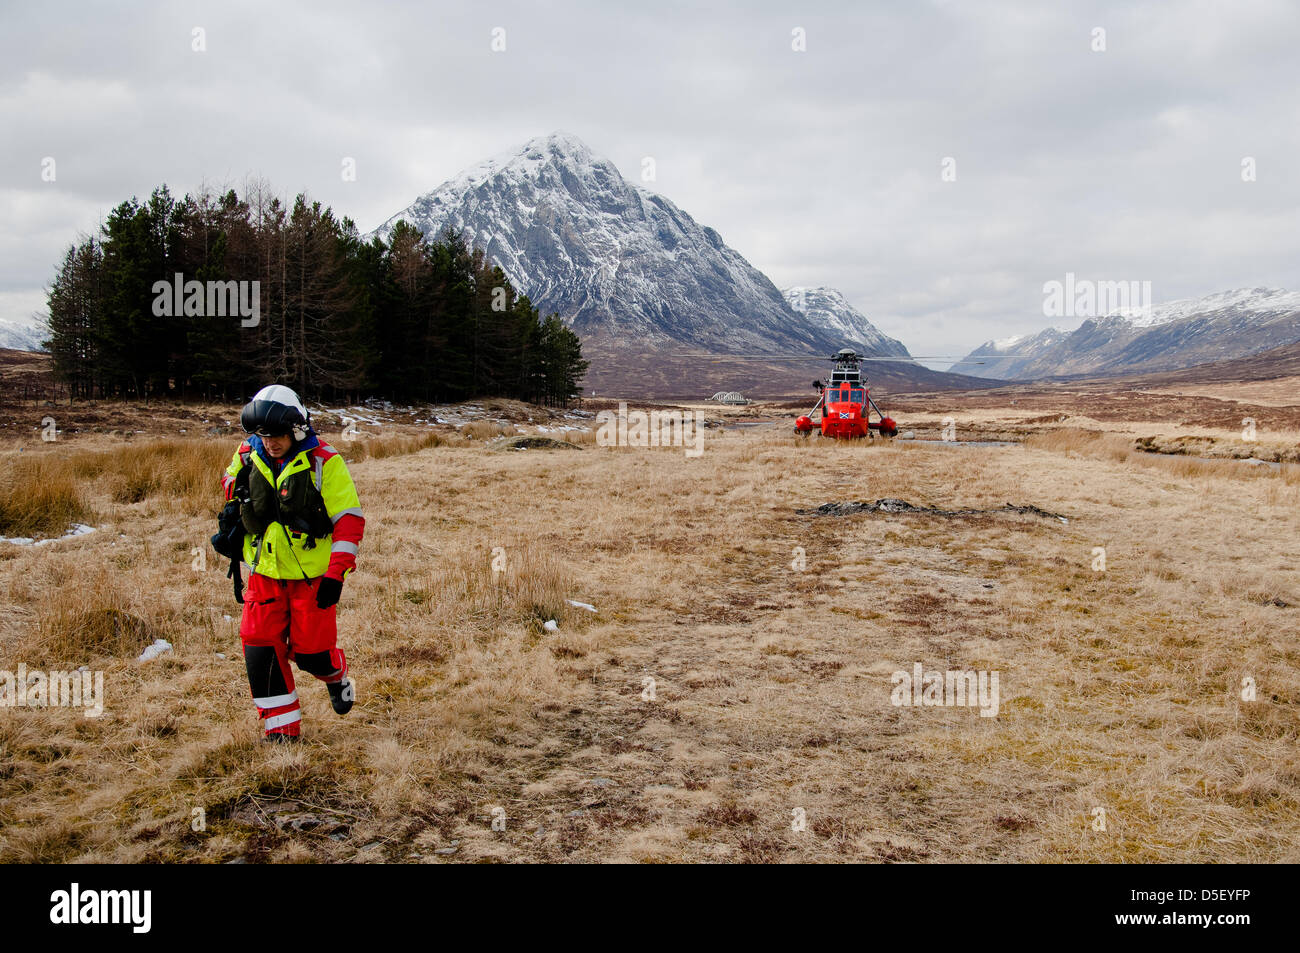 Glencoe, UK. 31st March 2013. Mountain rescue teams from Scotland resume their search for the missing skier on Glencoe Stock Photo